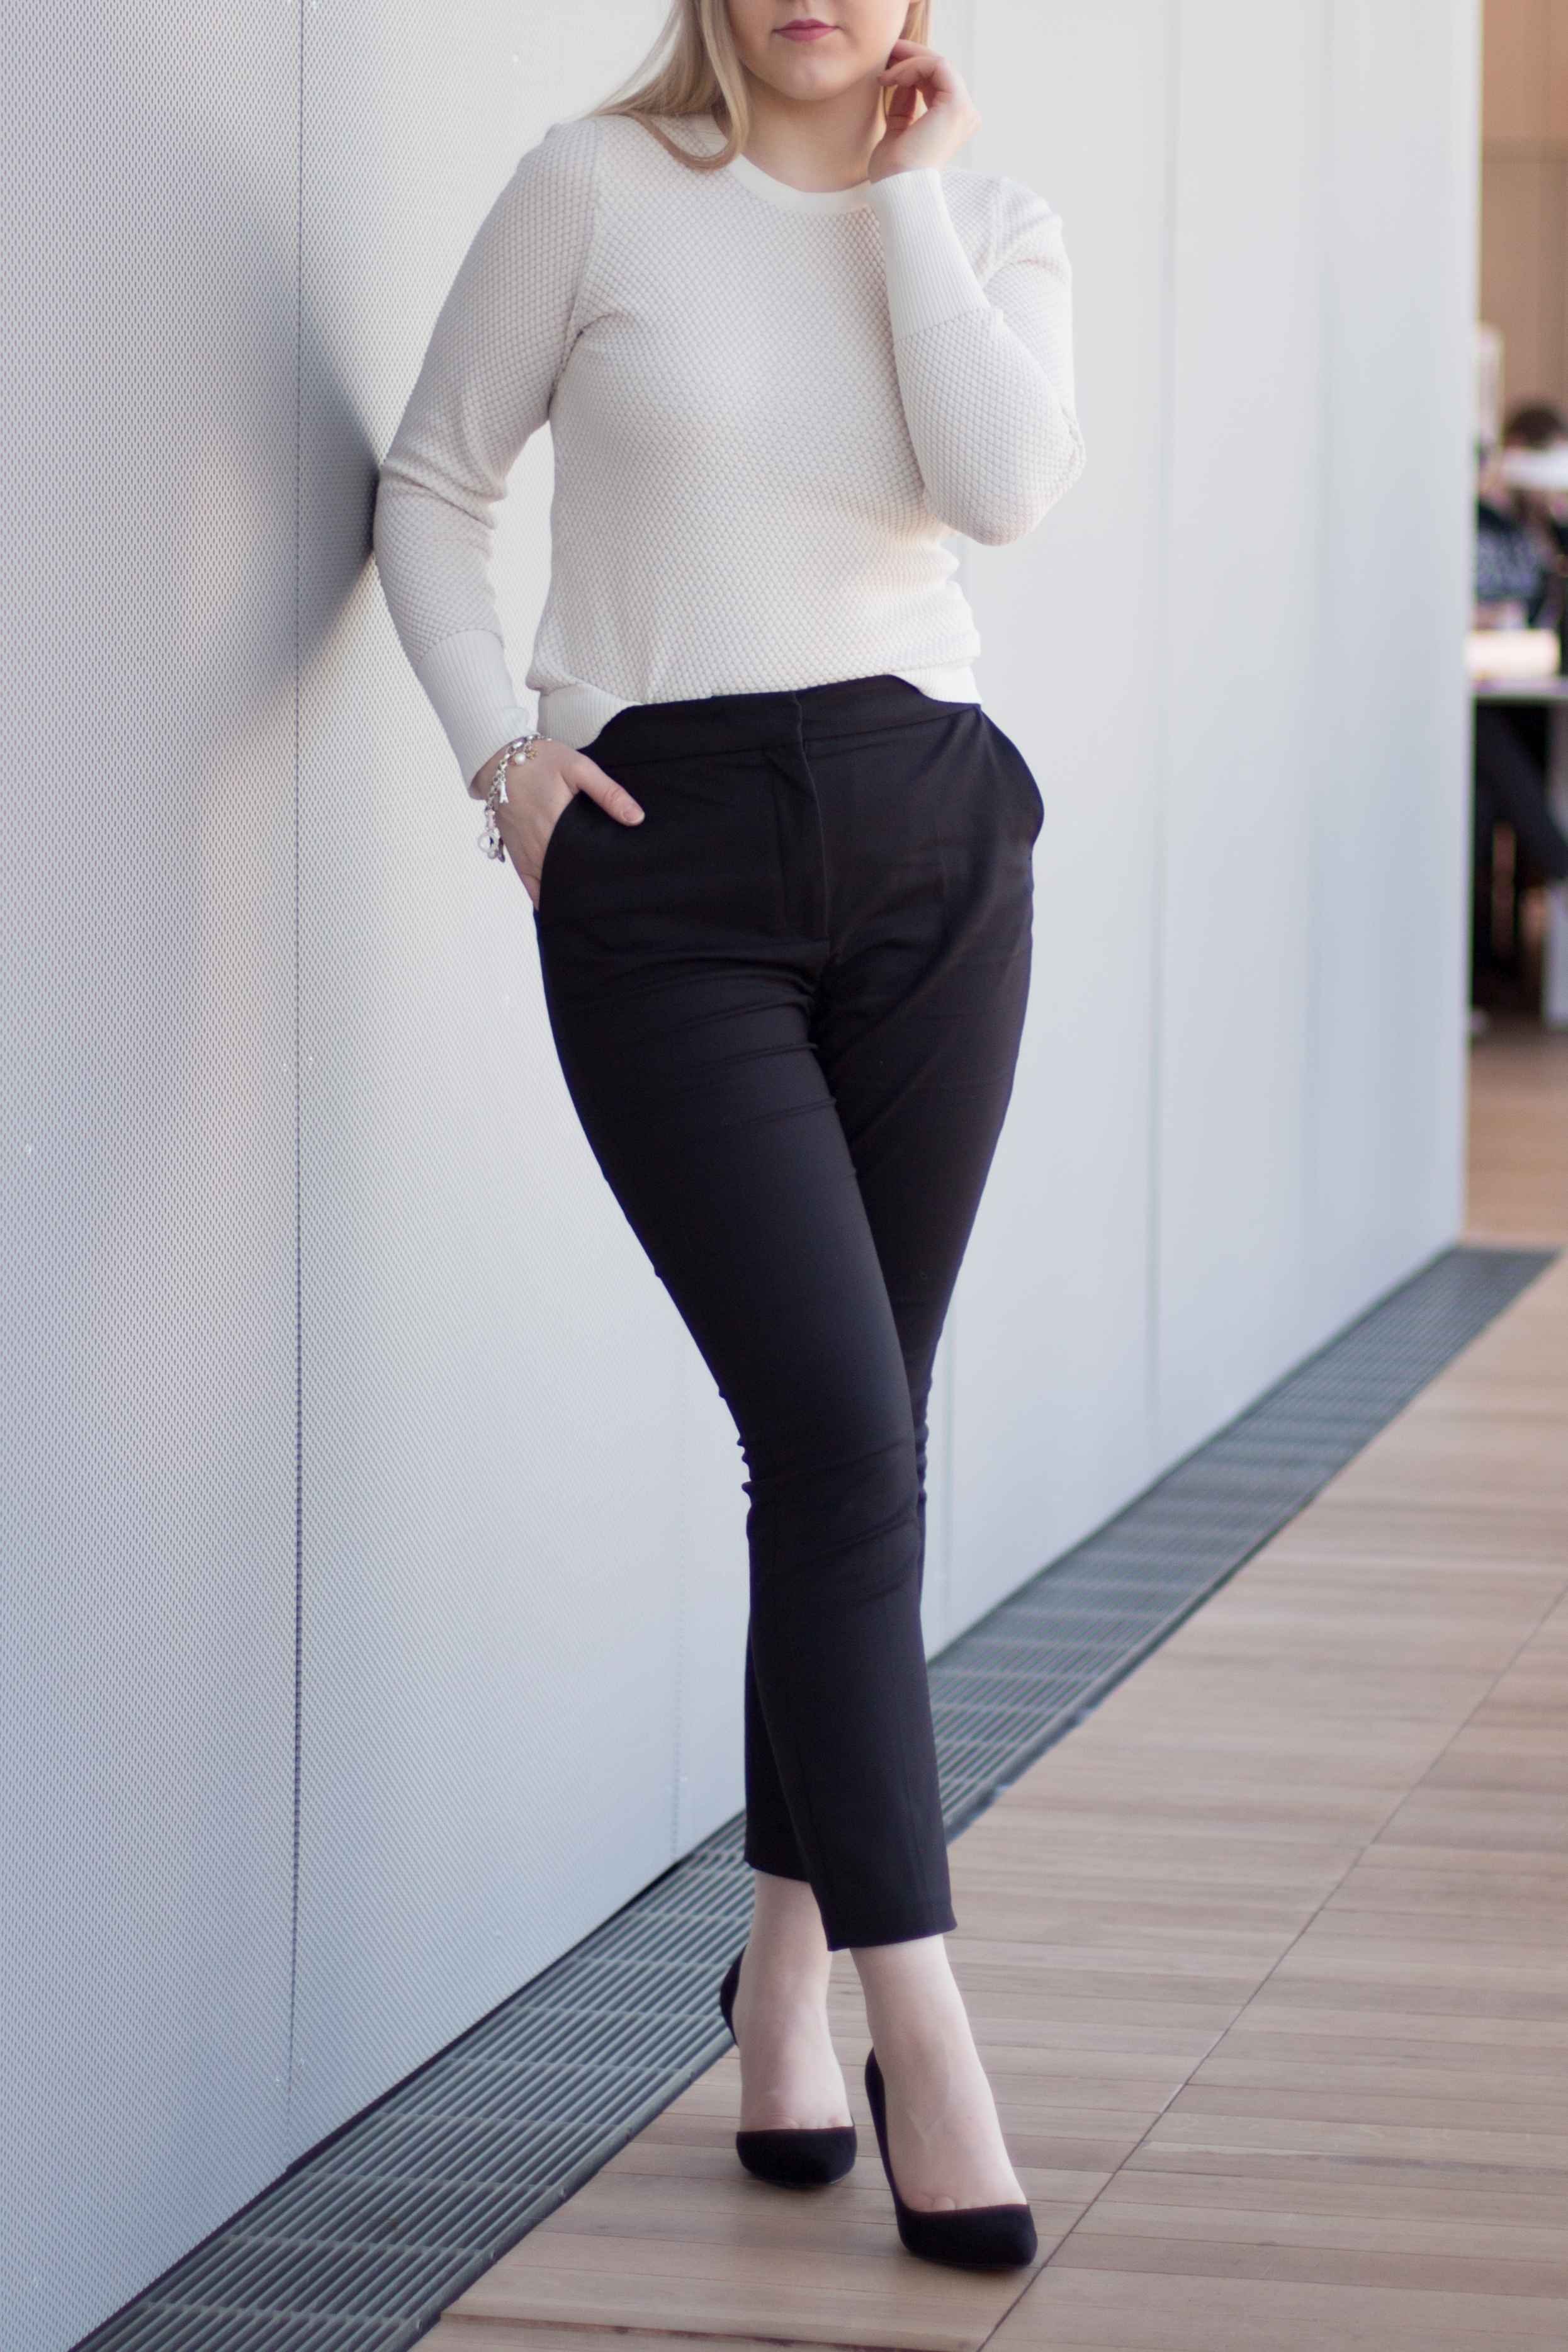 Casual friday outfit (2 of 24).jpg